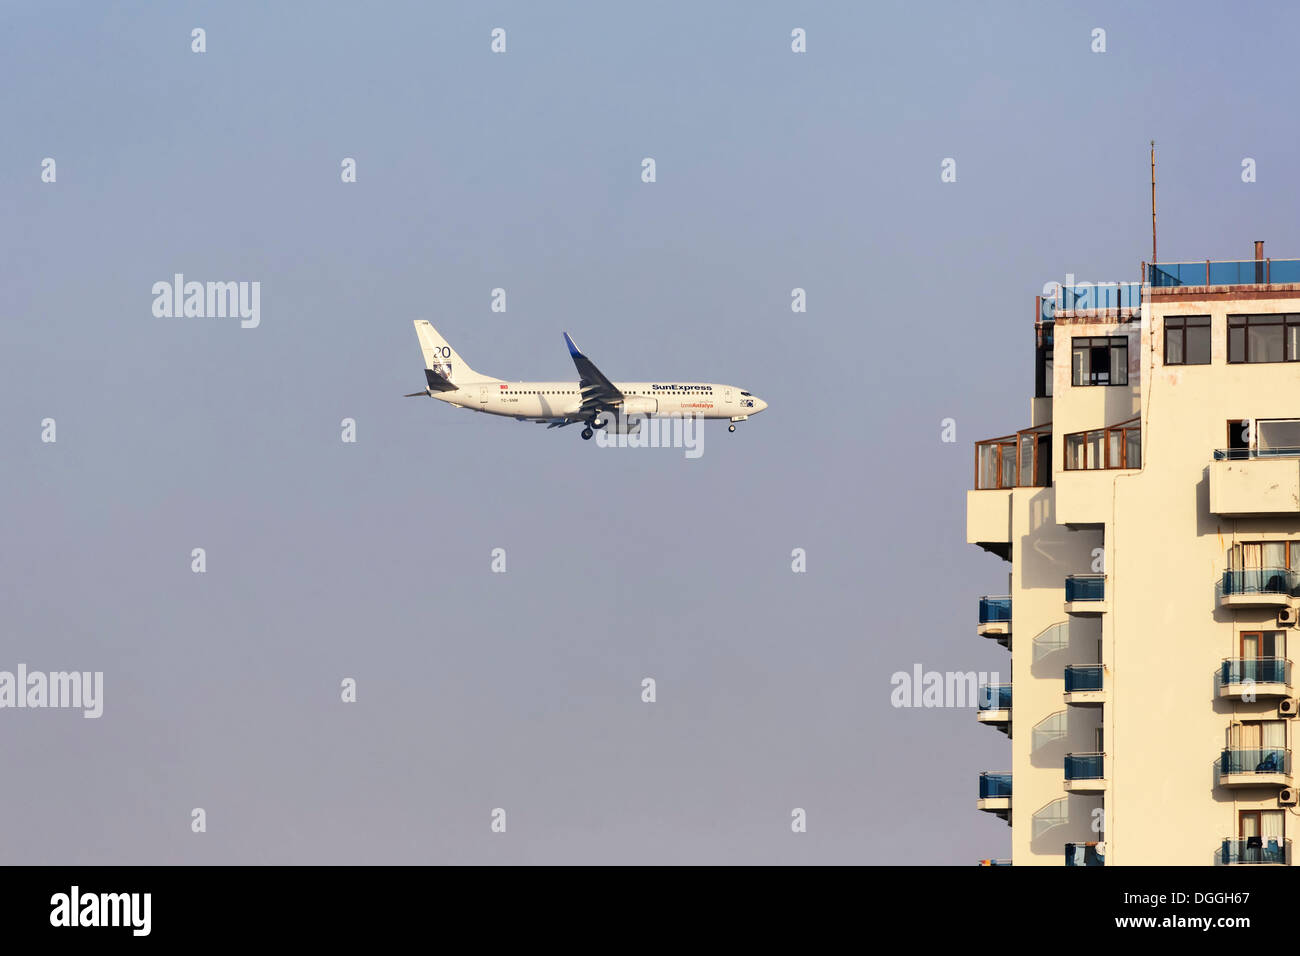 SunExpress Boeing 737-500 passenger airline on the landing approach to Antalya, Turkish Riviera, Turkey, Asia - Stock Image